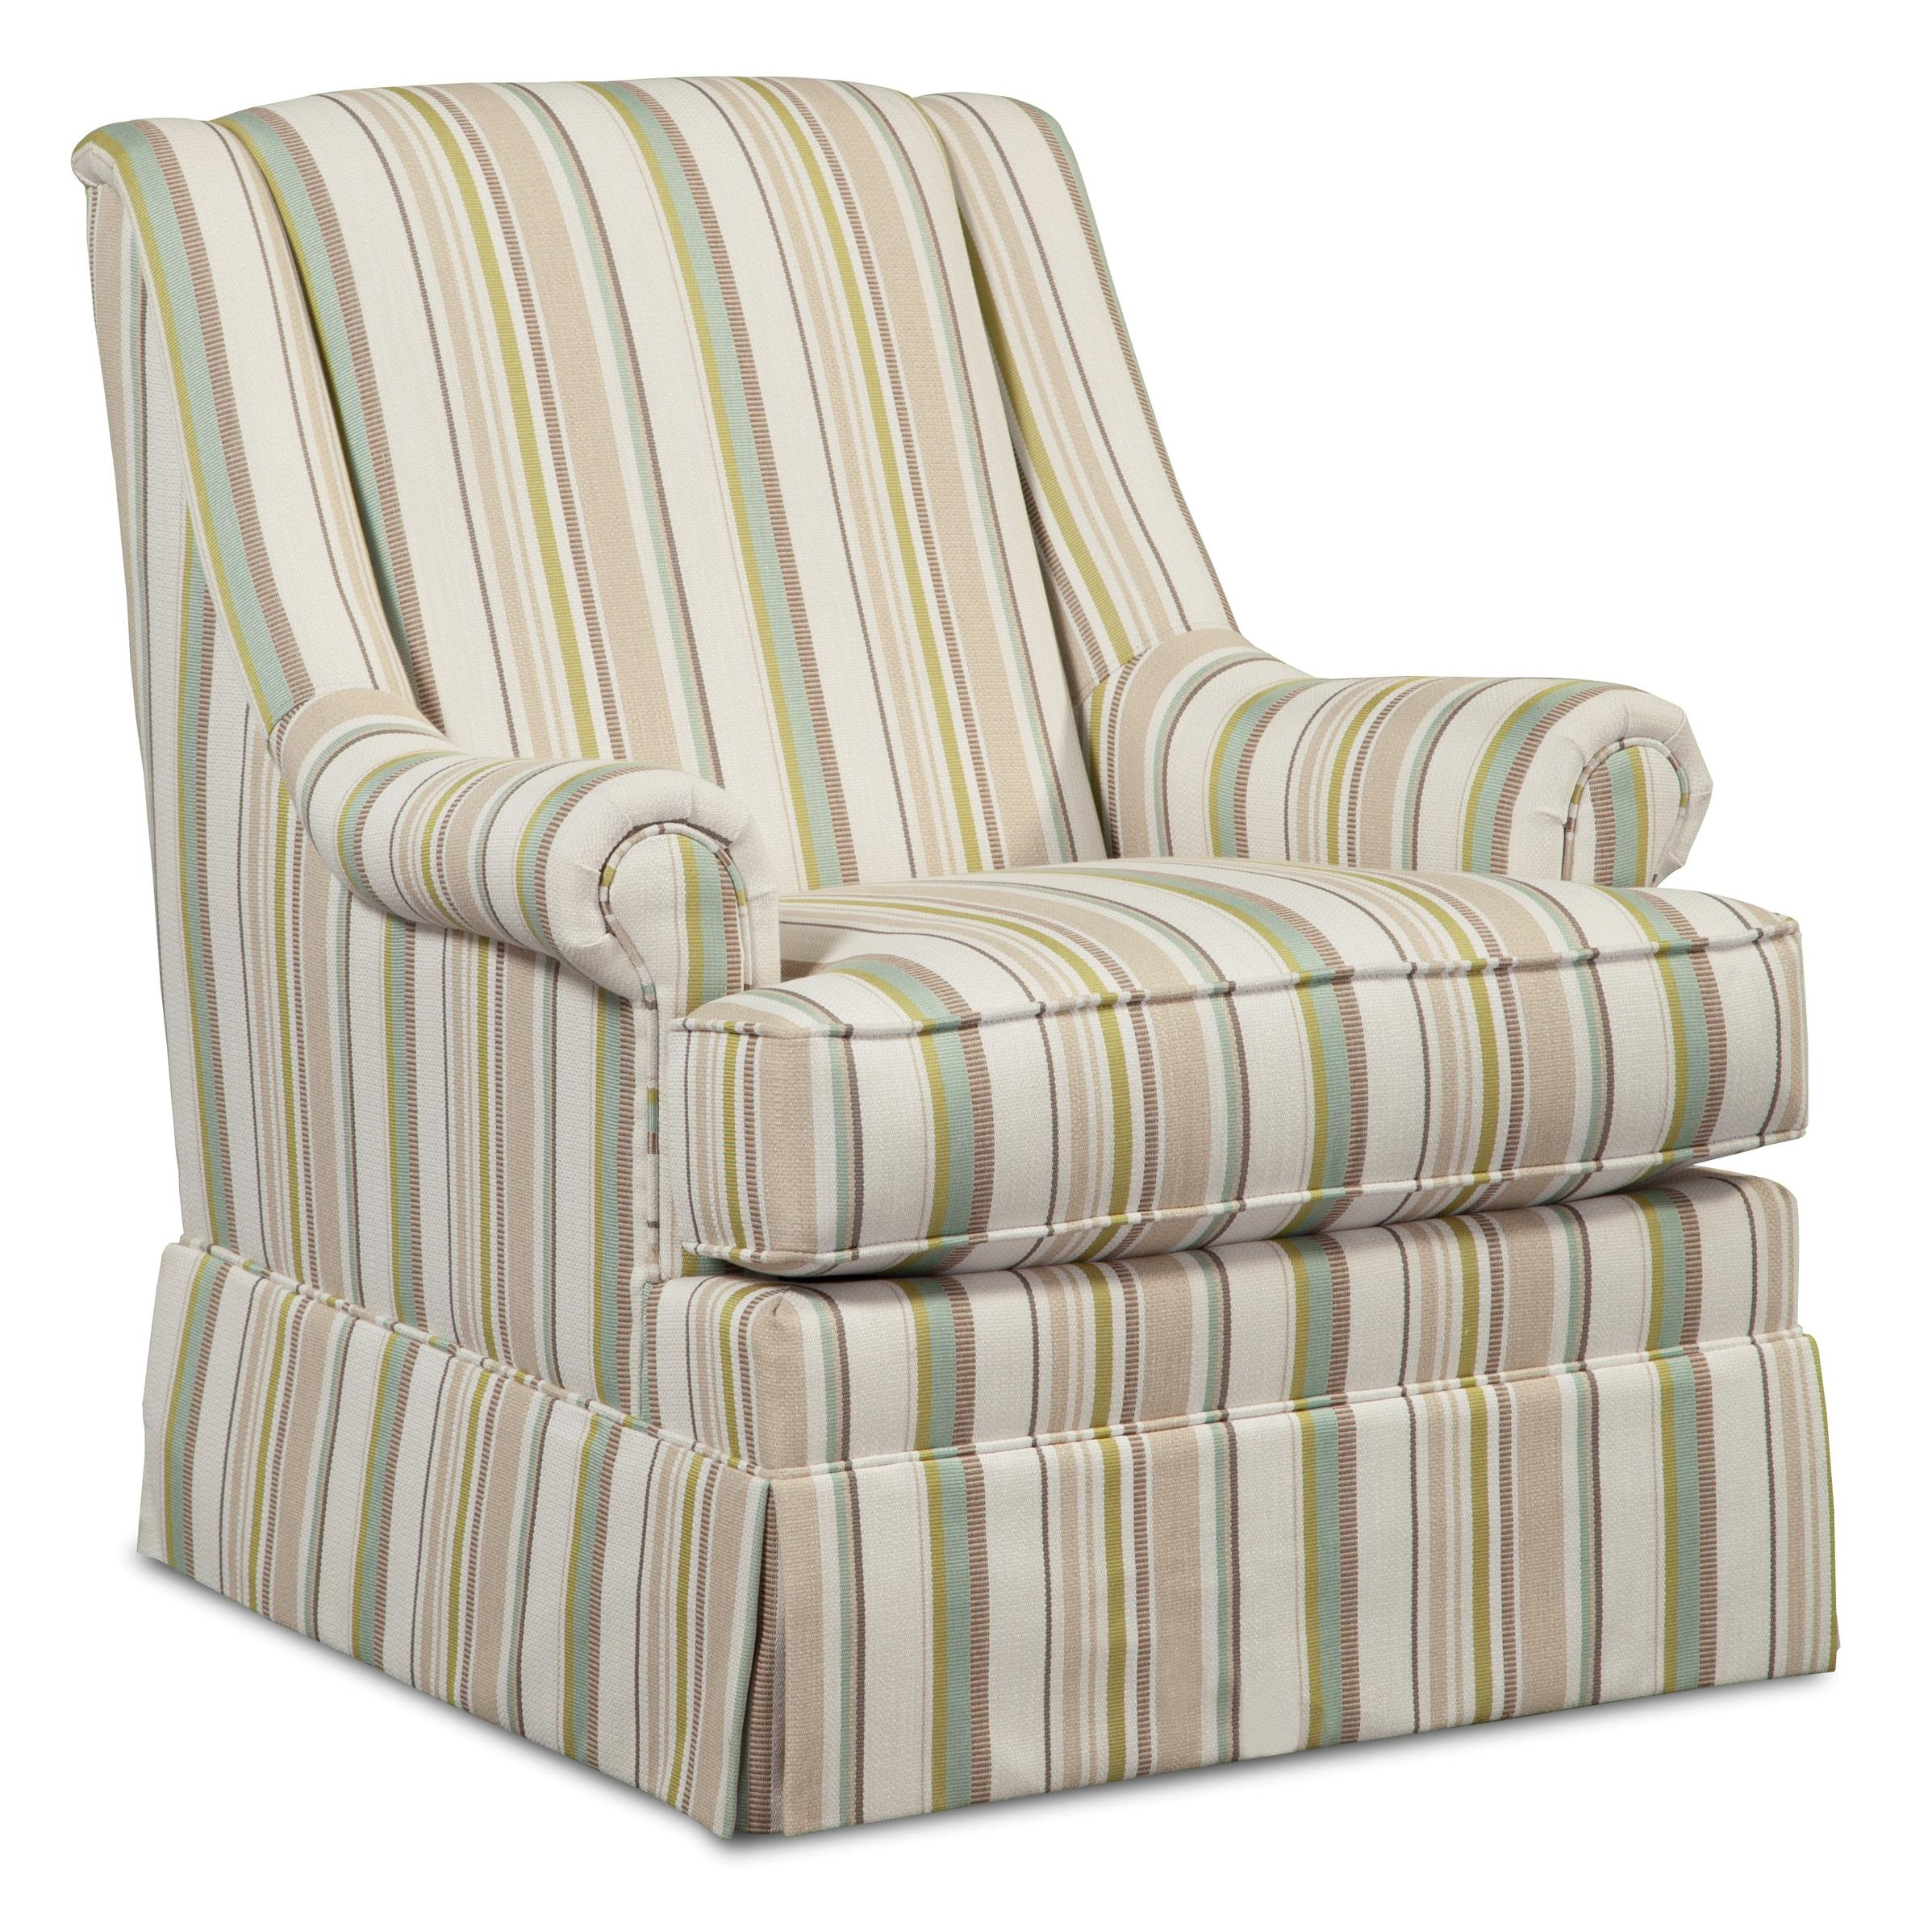 Swivel Chairs Accent Chair by Craftmaster at Turk Furniture